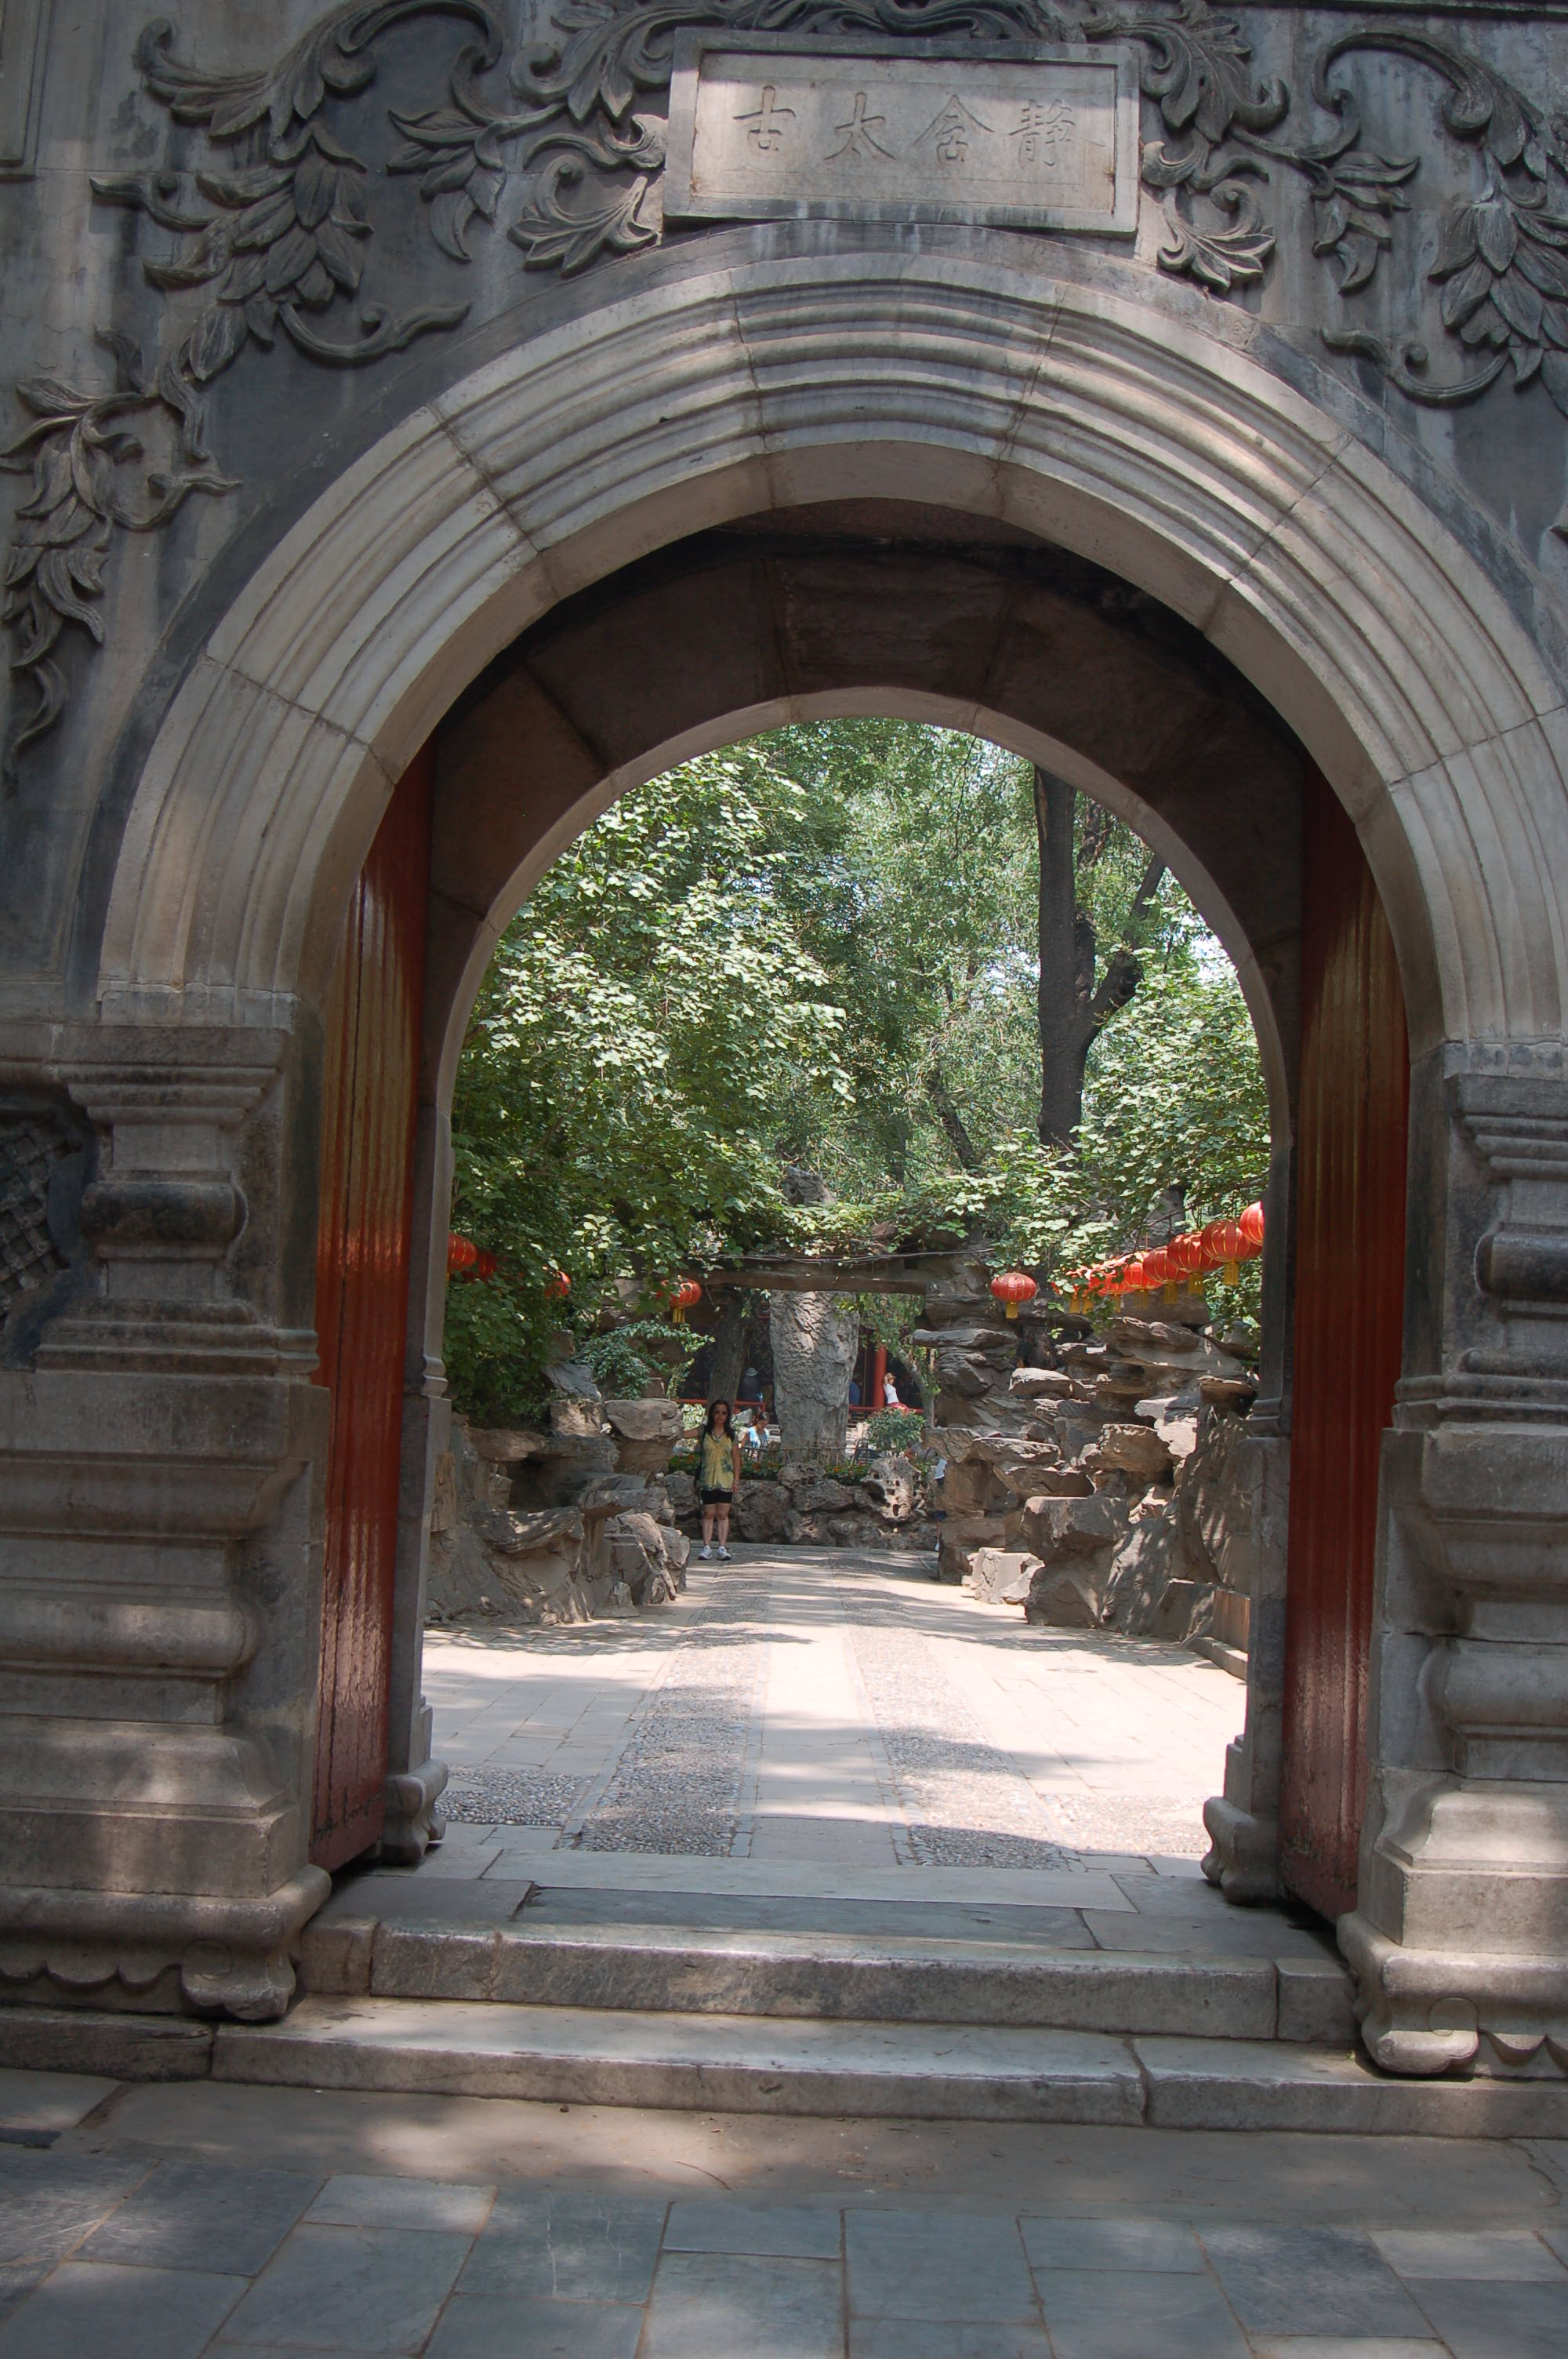 Another Entrance to the Garden